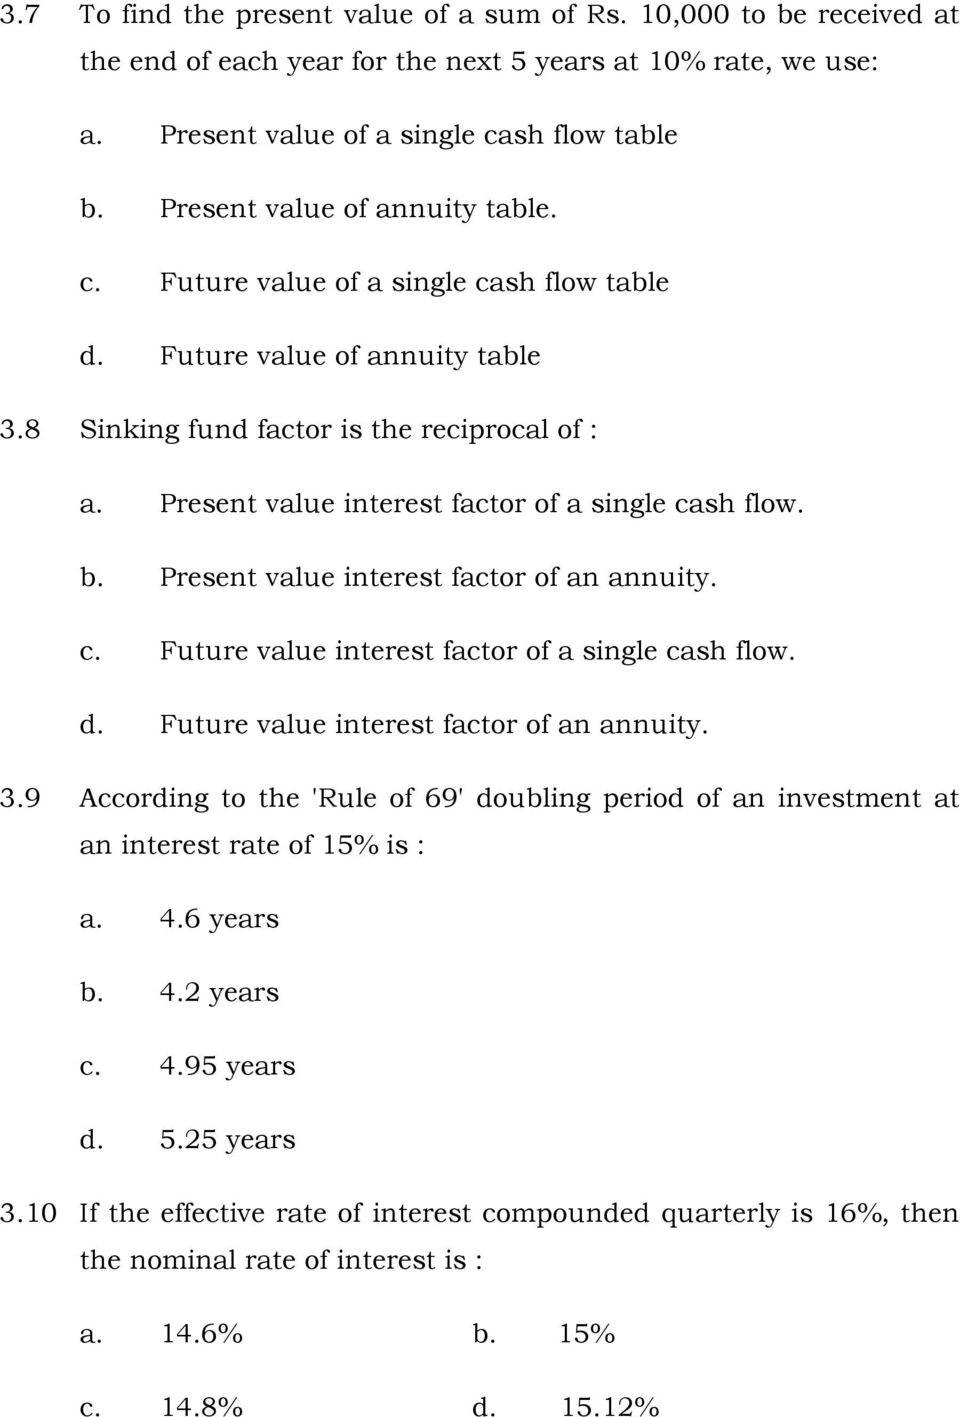 Present value interest factor of a single cash flow. b. Present value interest factor of an annuity. c. Future value interest factor of a single cash flow. d.